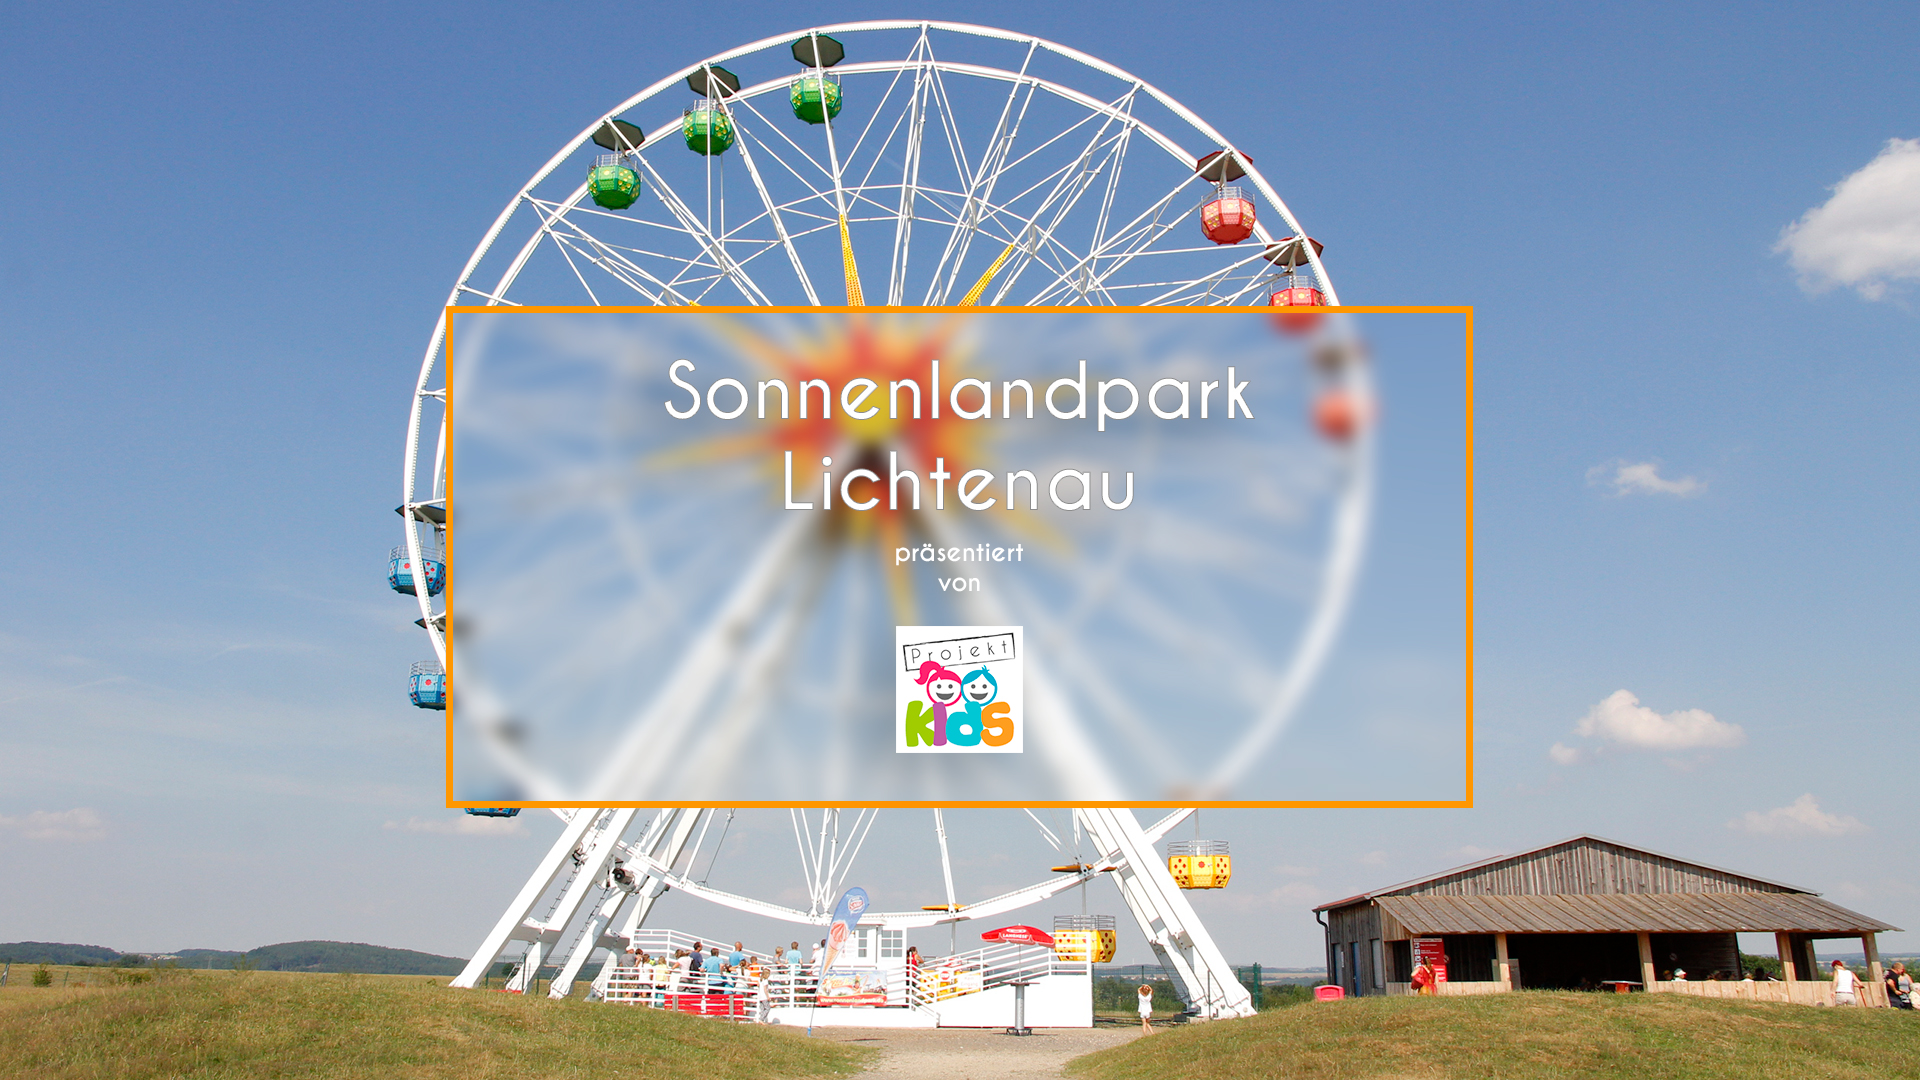 Video - Sonnenlandpark Lichtenau